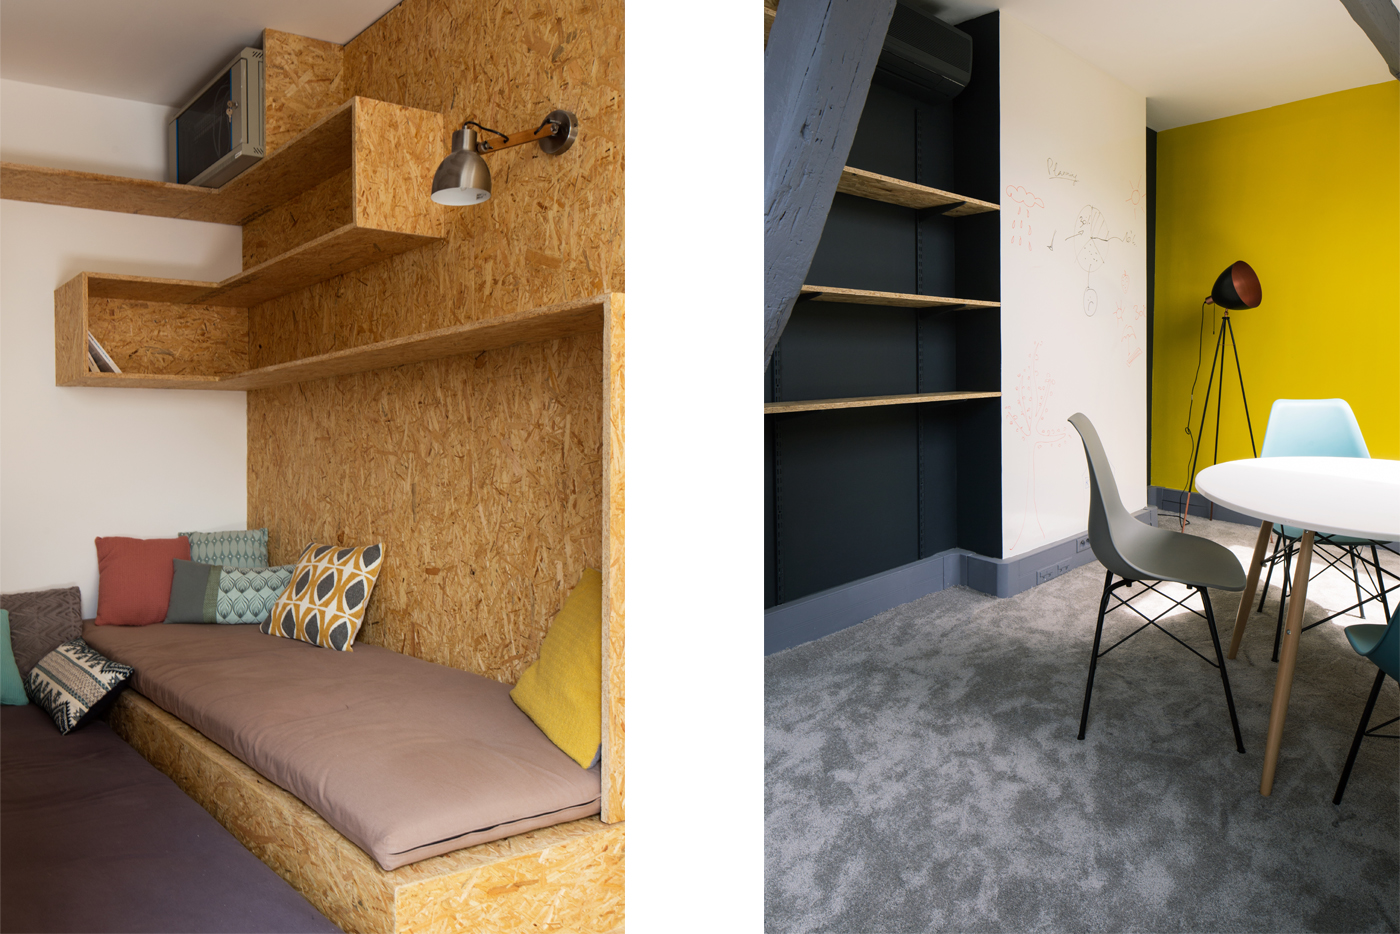 ban architecture renovation amenagement bureaux startup la ruche qui dit oui pro local professionnel 114